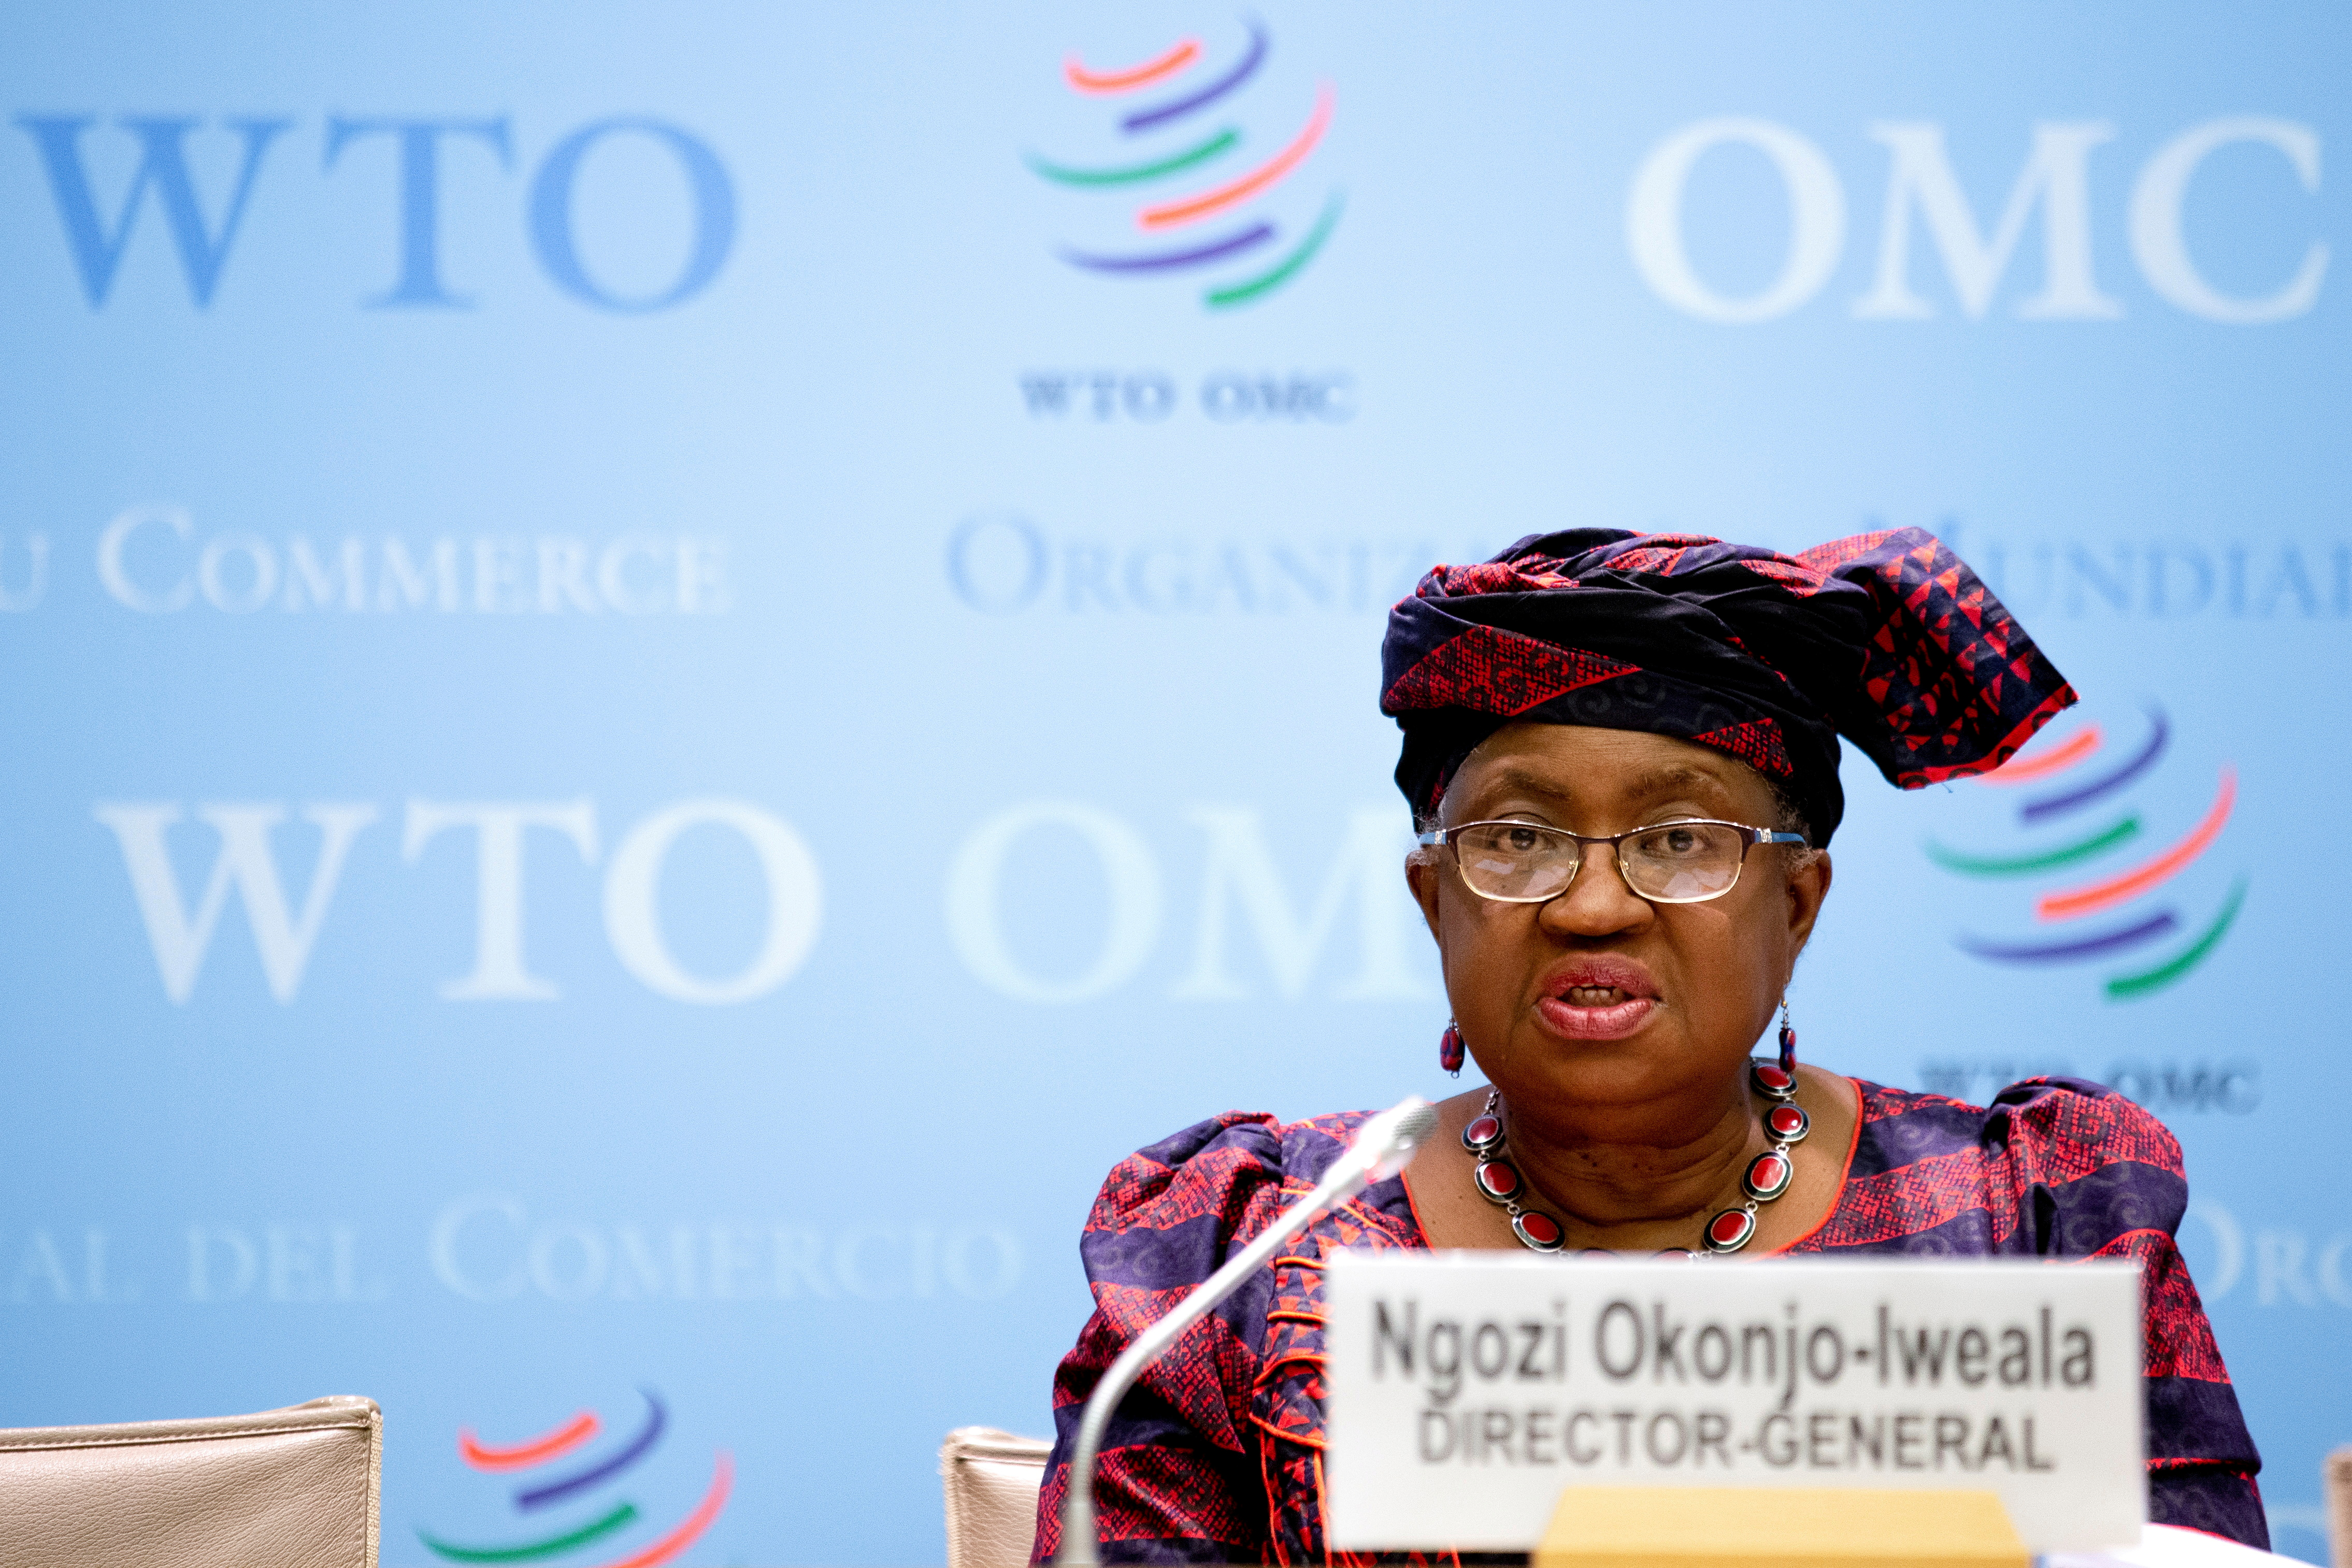 Director-General of the World Trade Organisation Ngozi Okonjo-Iweala speaks during a press conference remotely on the annual global WTO trade forecast at the headquarters of the World Trade Organization (WTO) in Geneva, Switzerland March 31, 2021. Salvatore Di Nolfi/Pool via Reuters/File Photo